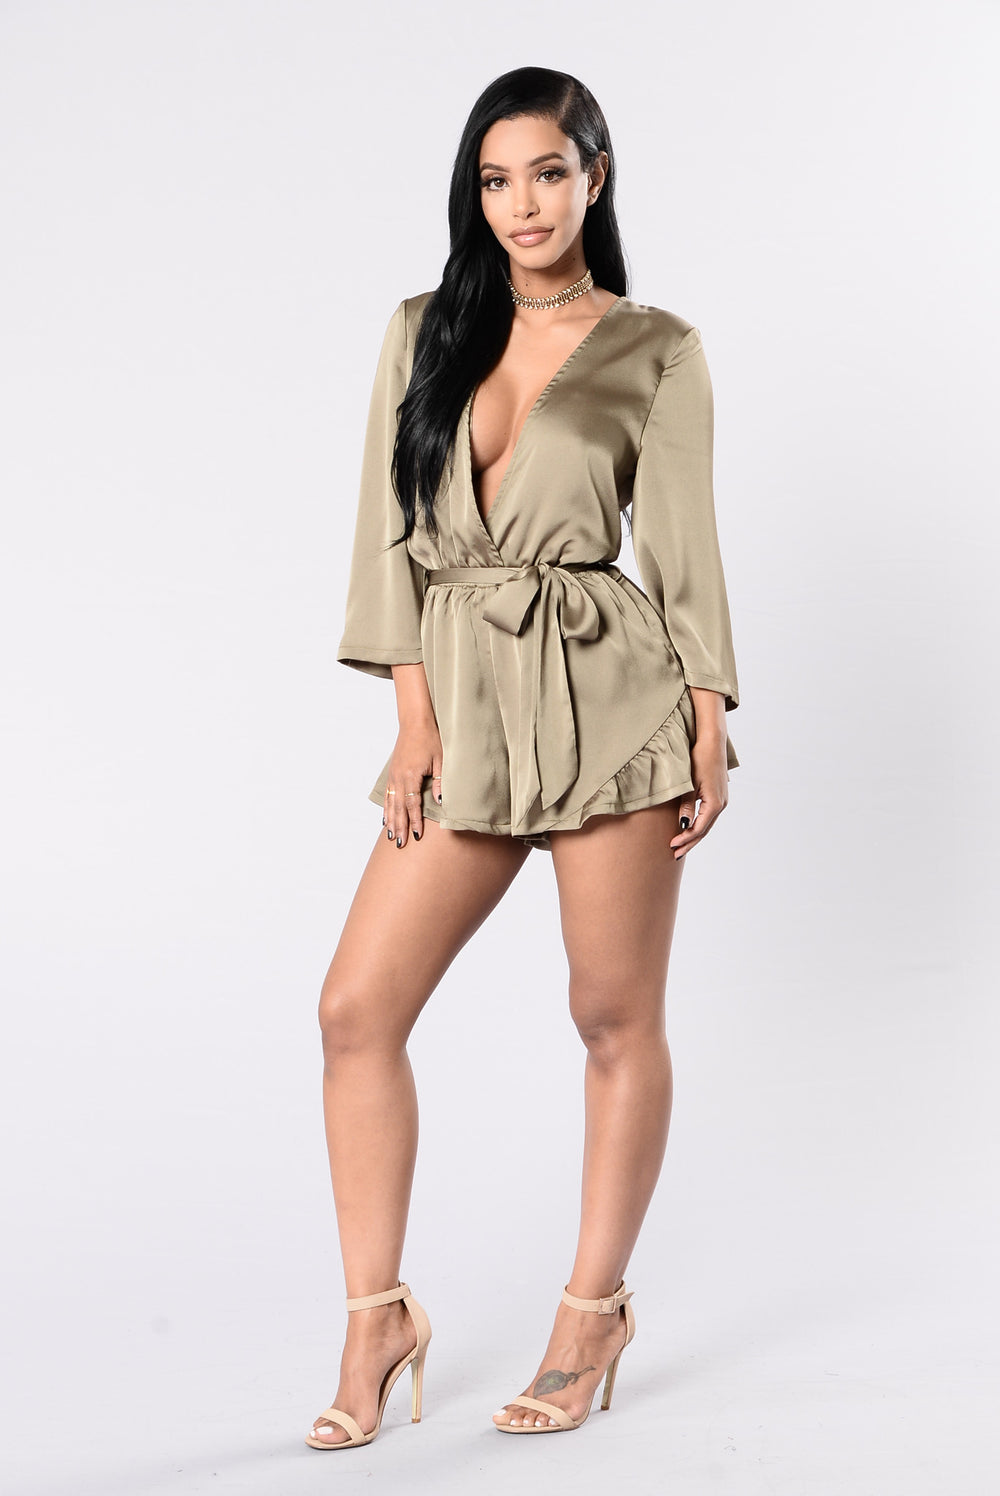 Restless Love Romper - Olive